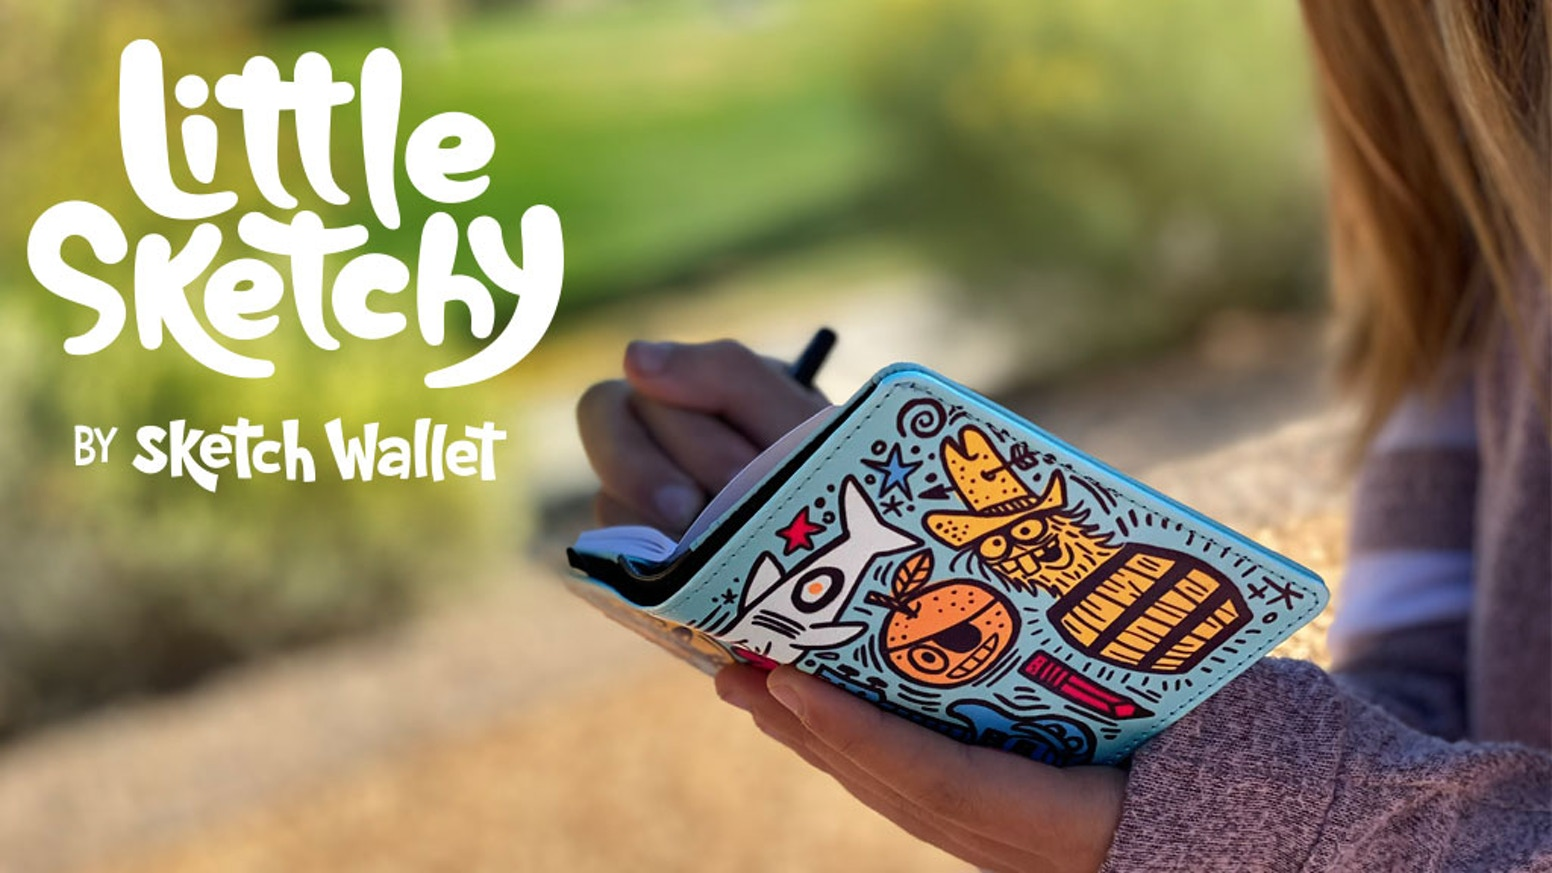 It's a wallet with a sketchbook inside - for kids!